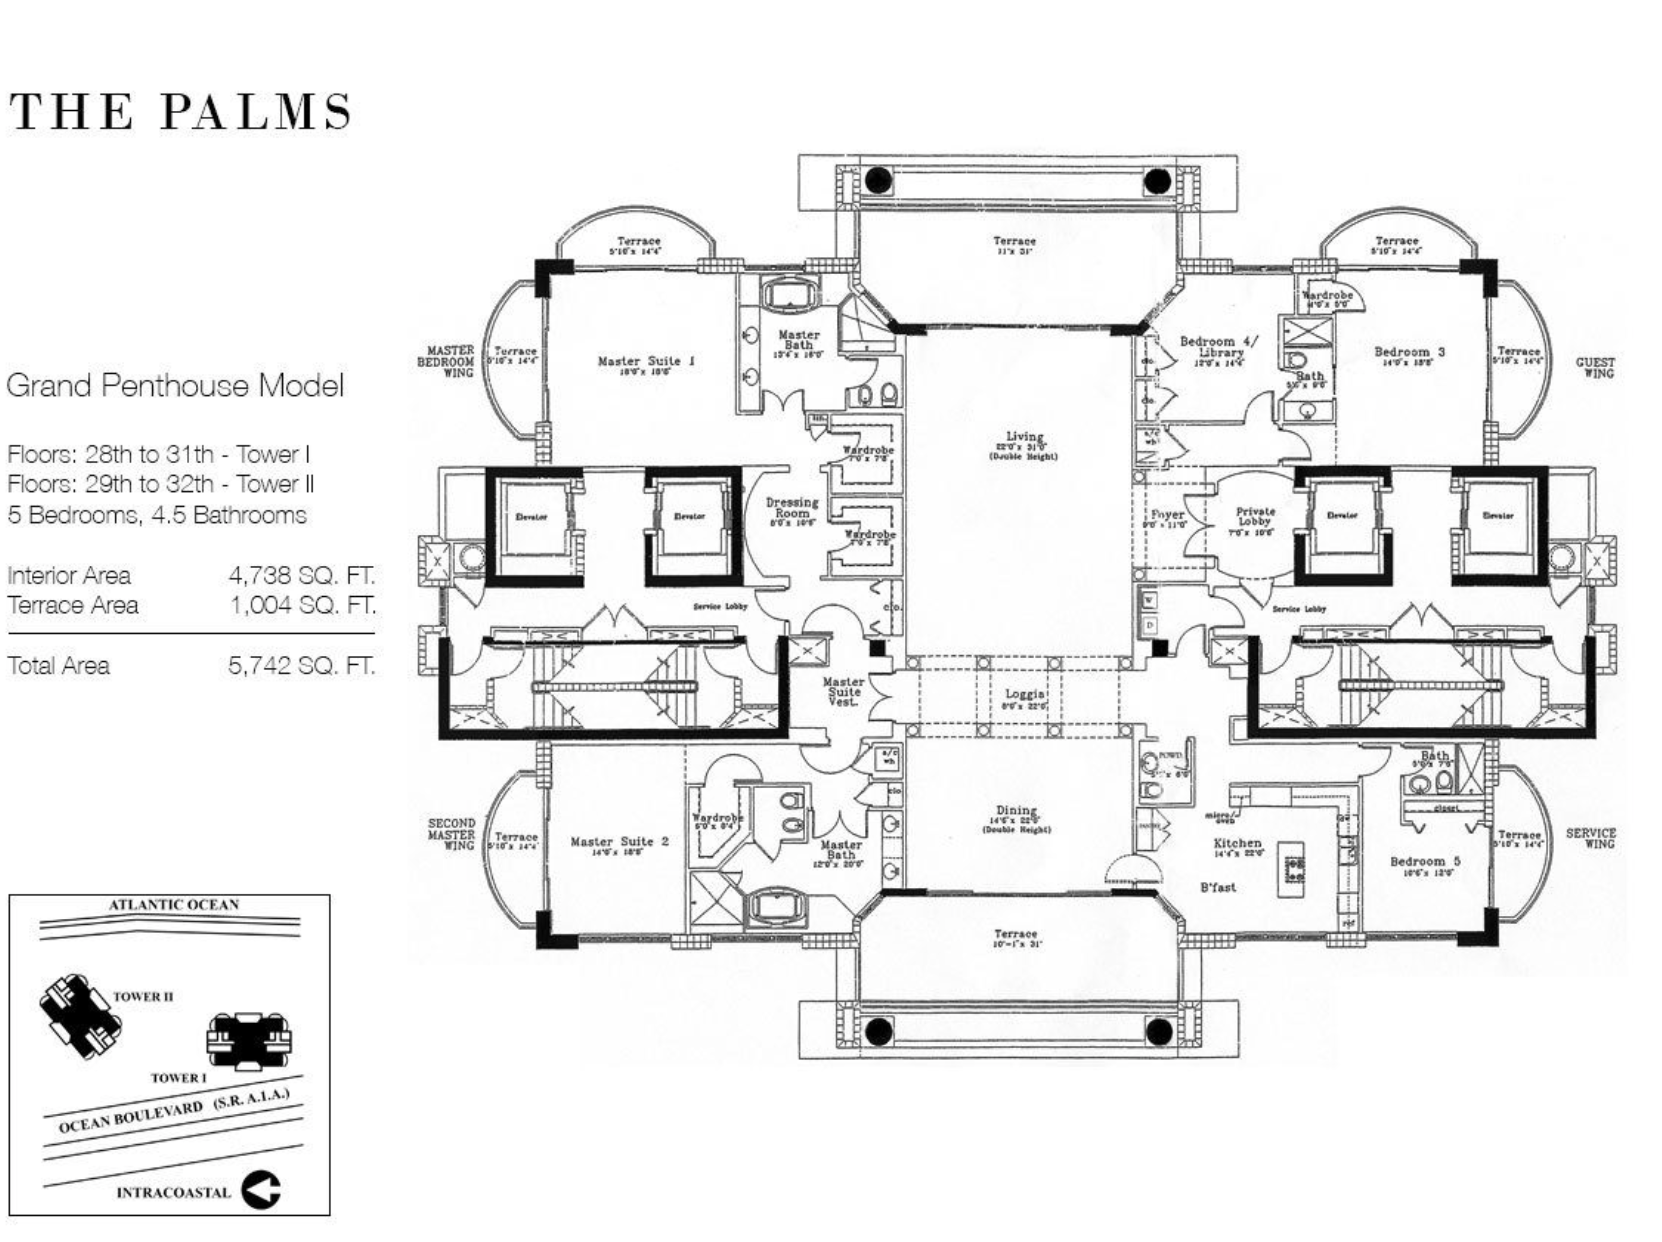 The Palms Fort Lauderdale | Floor Plan Grand Penthouse